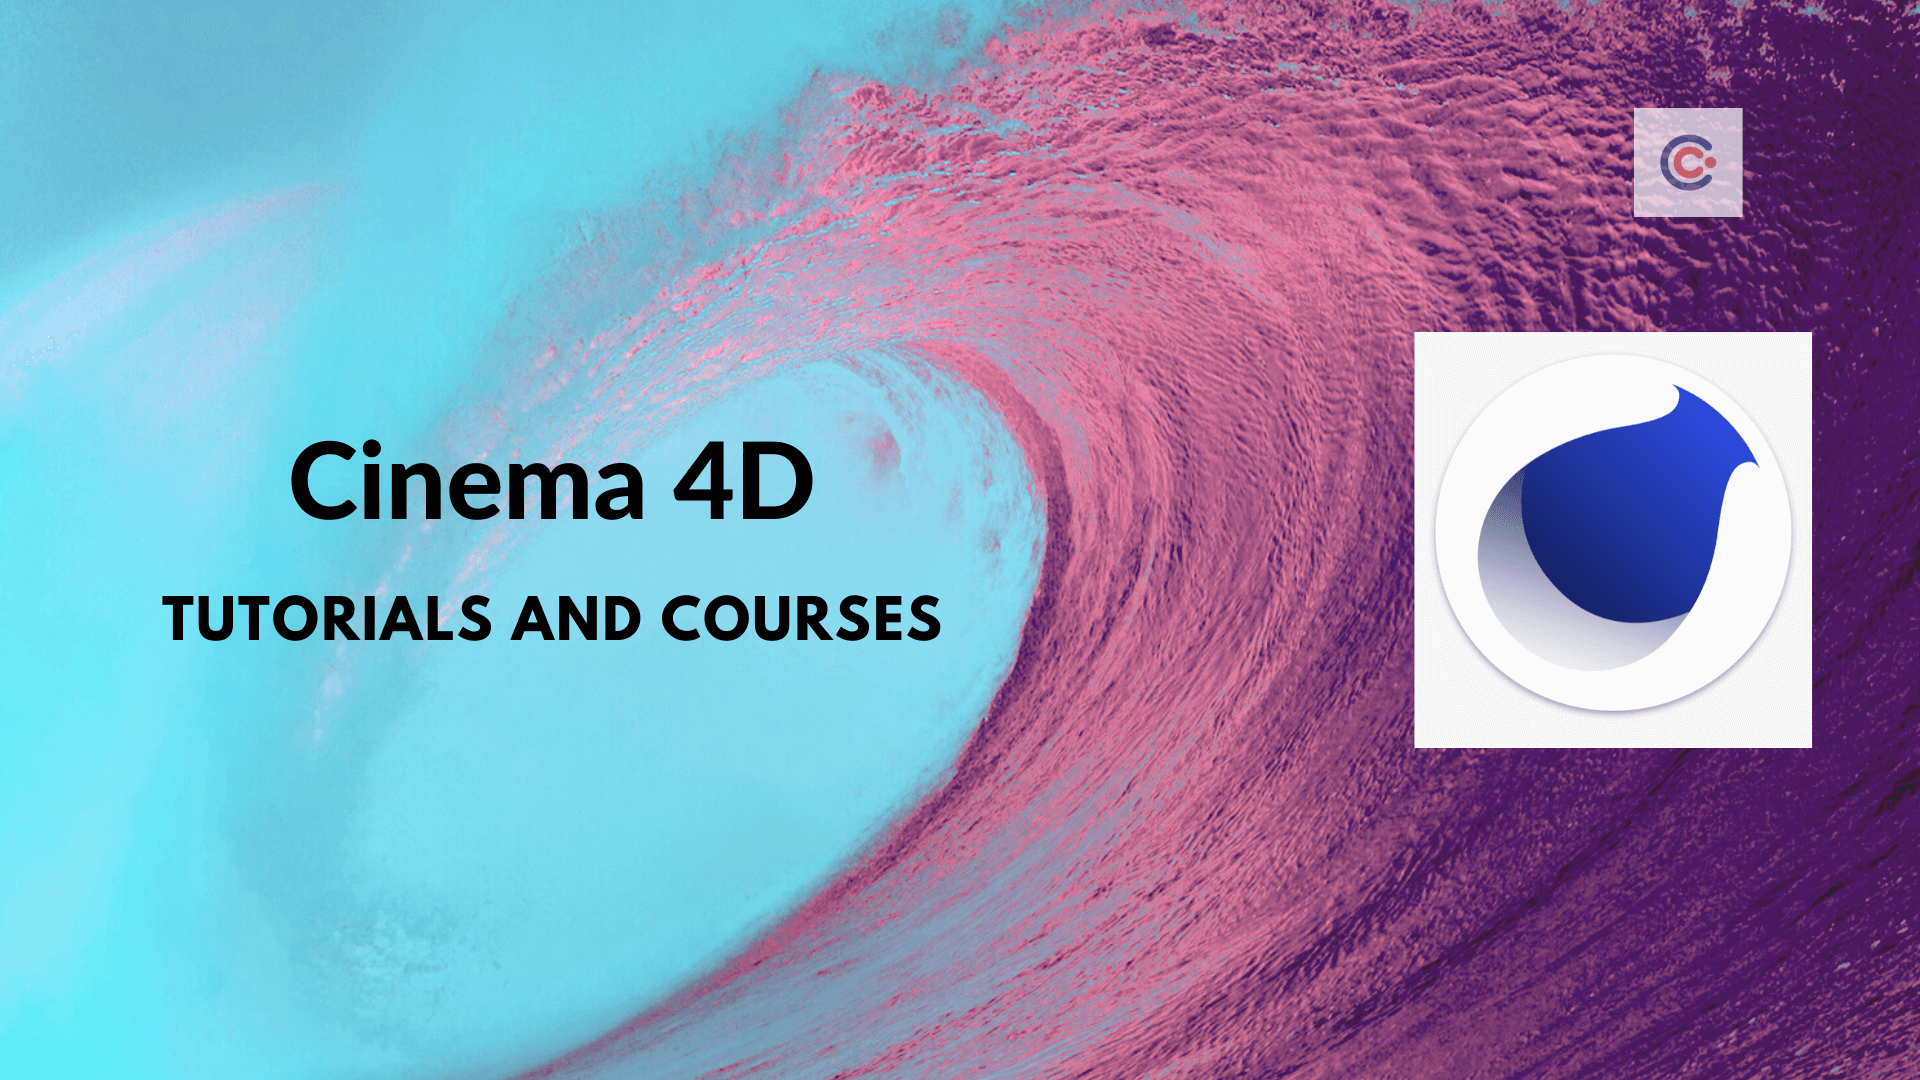 10 Best Cinema 4D Tutorials & Courses - Learn Cinema 4D Online